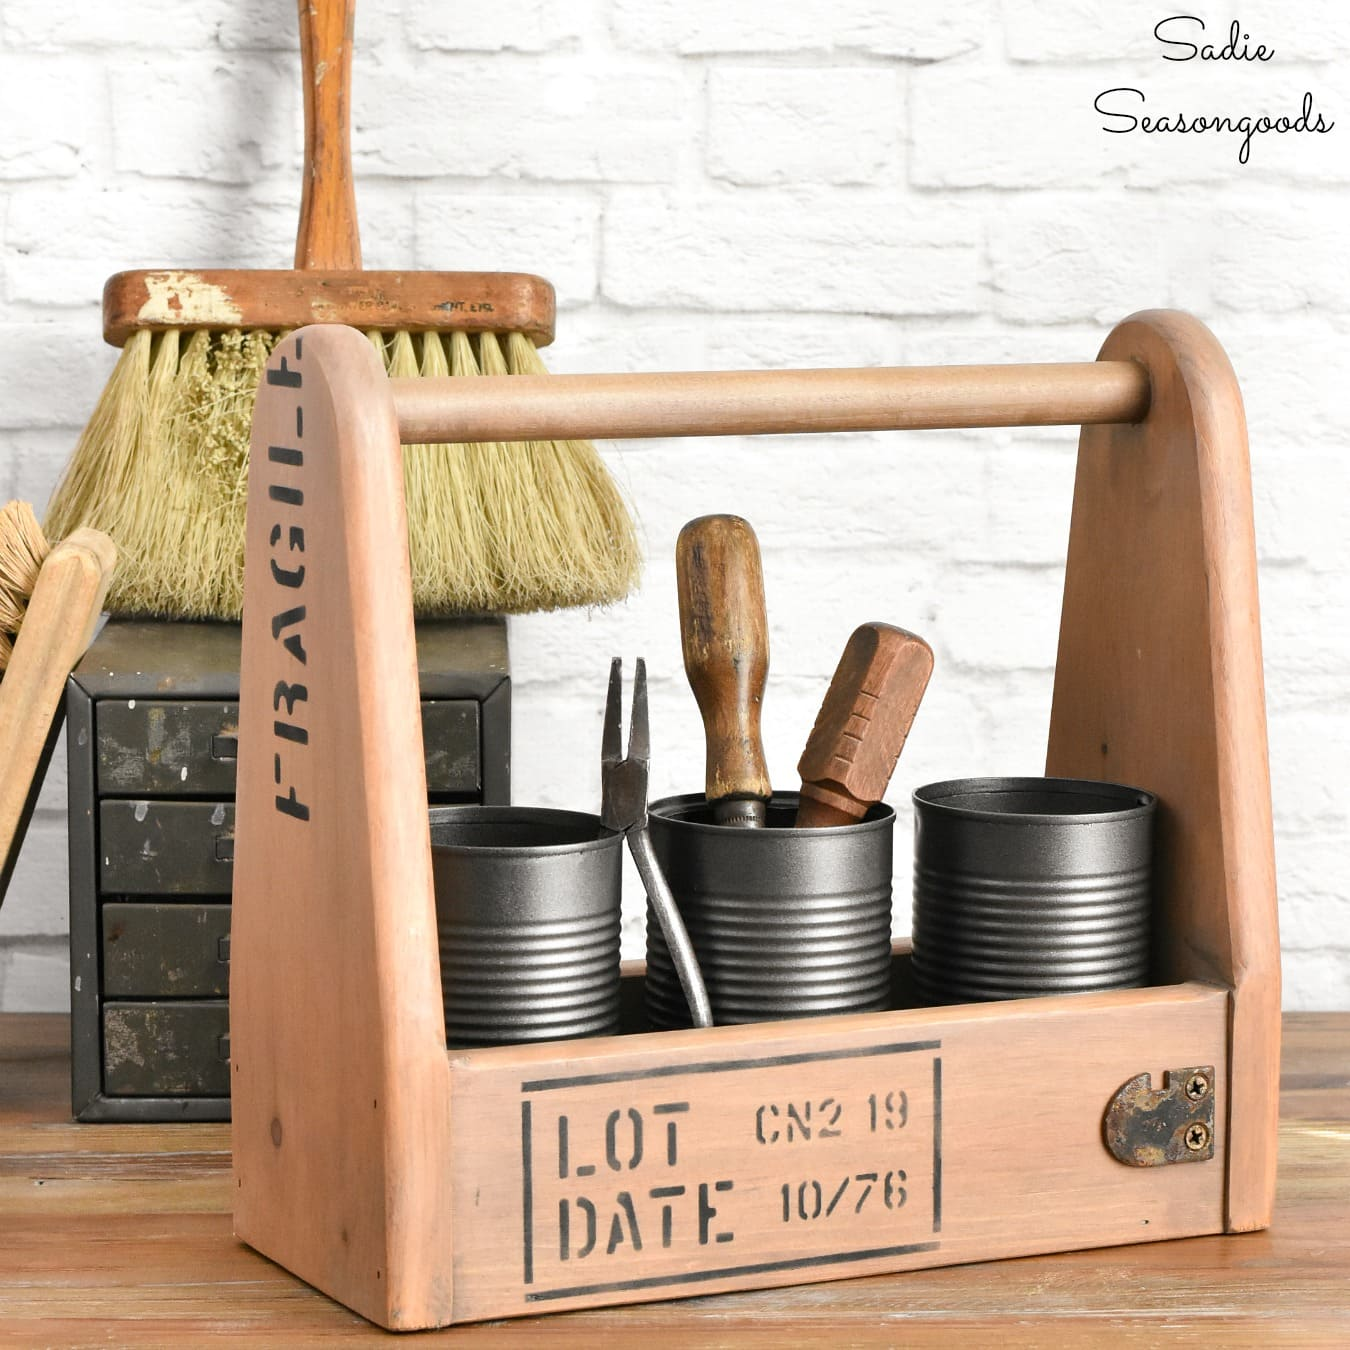 Industrial Style Decor with a Wooden Tool Caddy